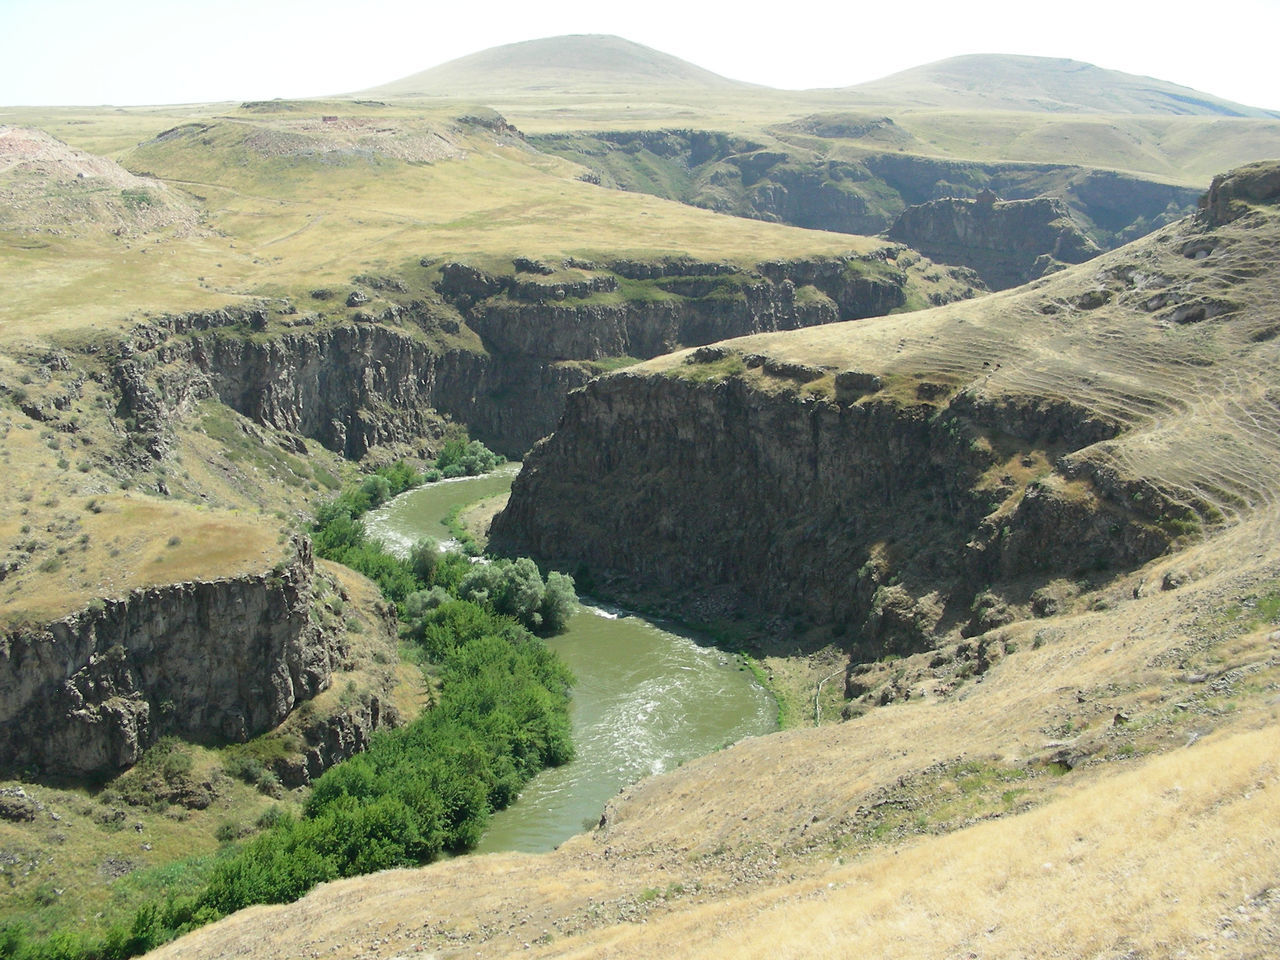 Asi river, Turkey/Armenian border. Beauty In Nature Border Borderline Day Kars Landscape Mountain National Park Nature No People Outdoors River River View Riverbank Ruins Scenics Tourist Attraction  Tourist Destination Tranquility Travel Destinations Travel Photography Turkey Turkeyphotooftheday